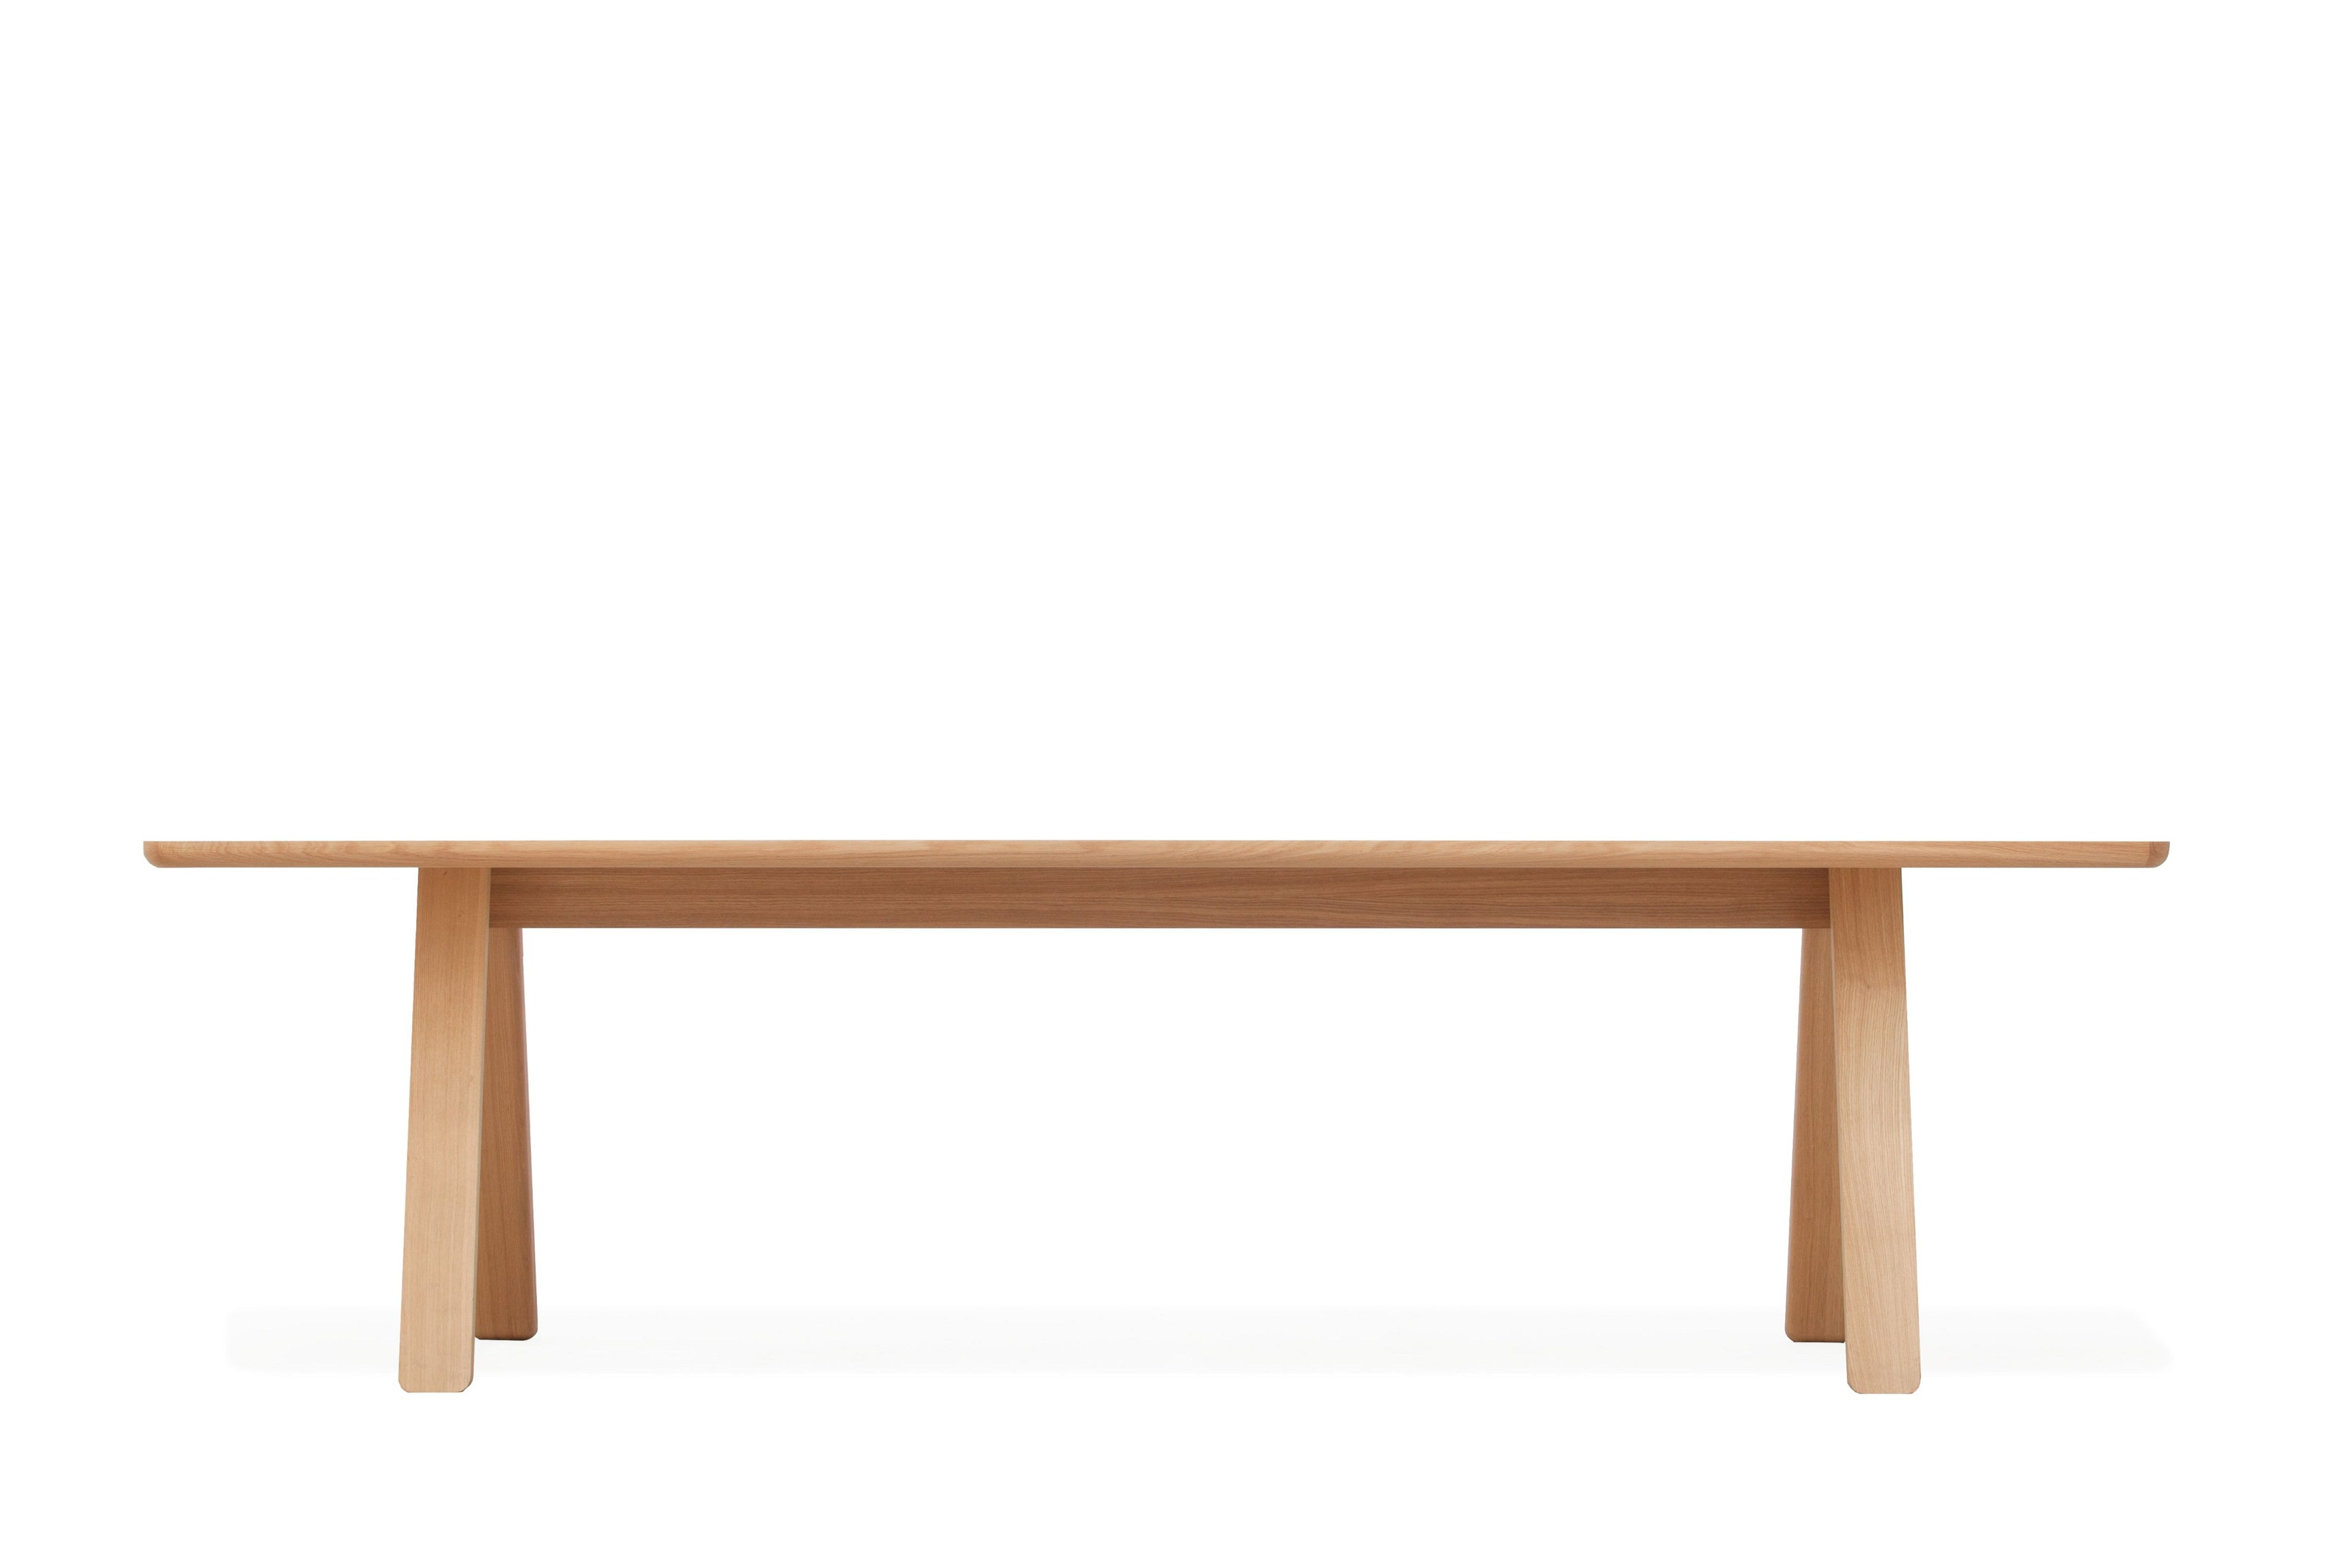 Table Rectangulaire Bois Massif Table Rectangulaire En Bois Massif Stelvio By Ton Design